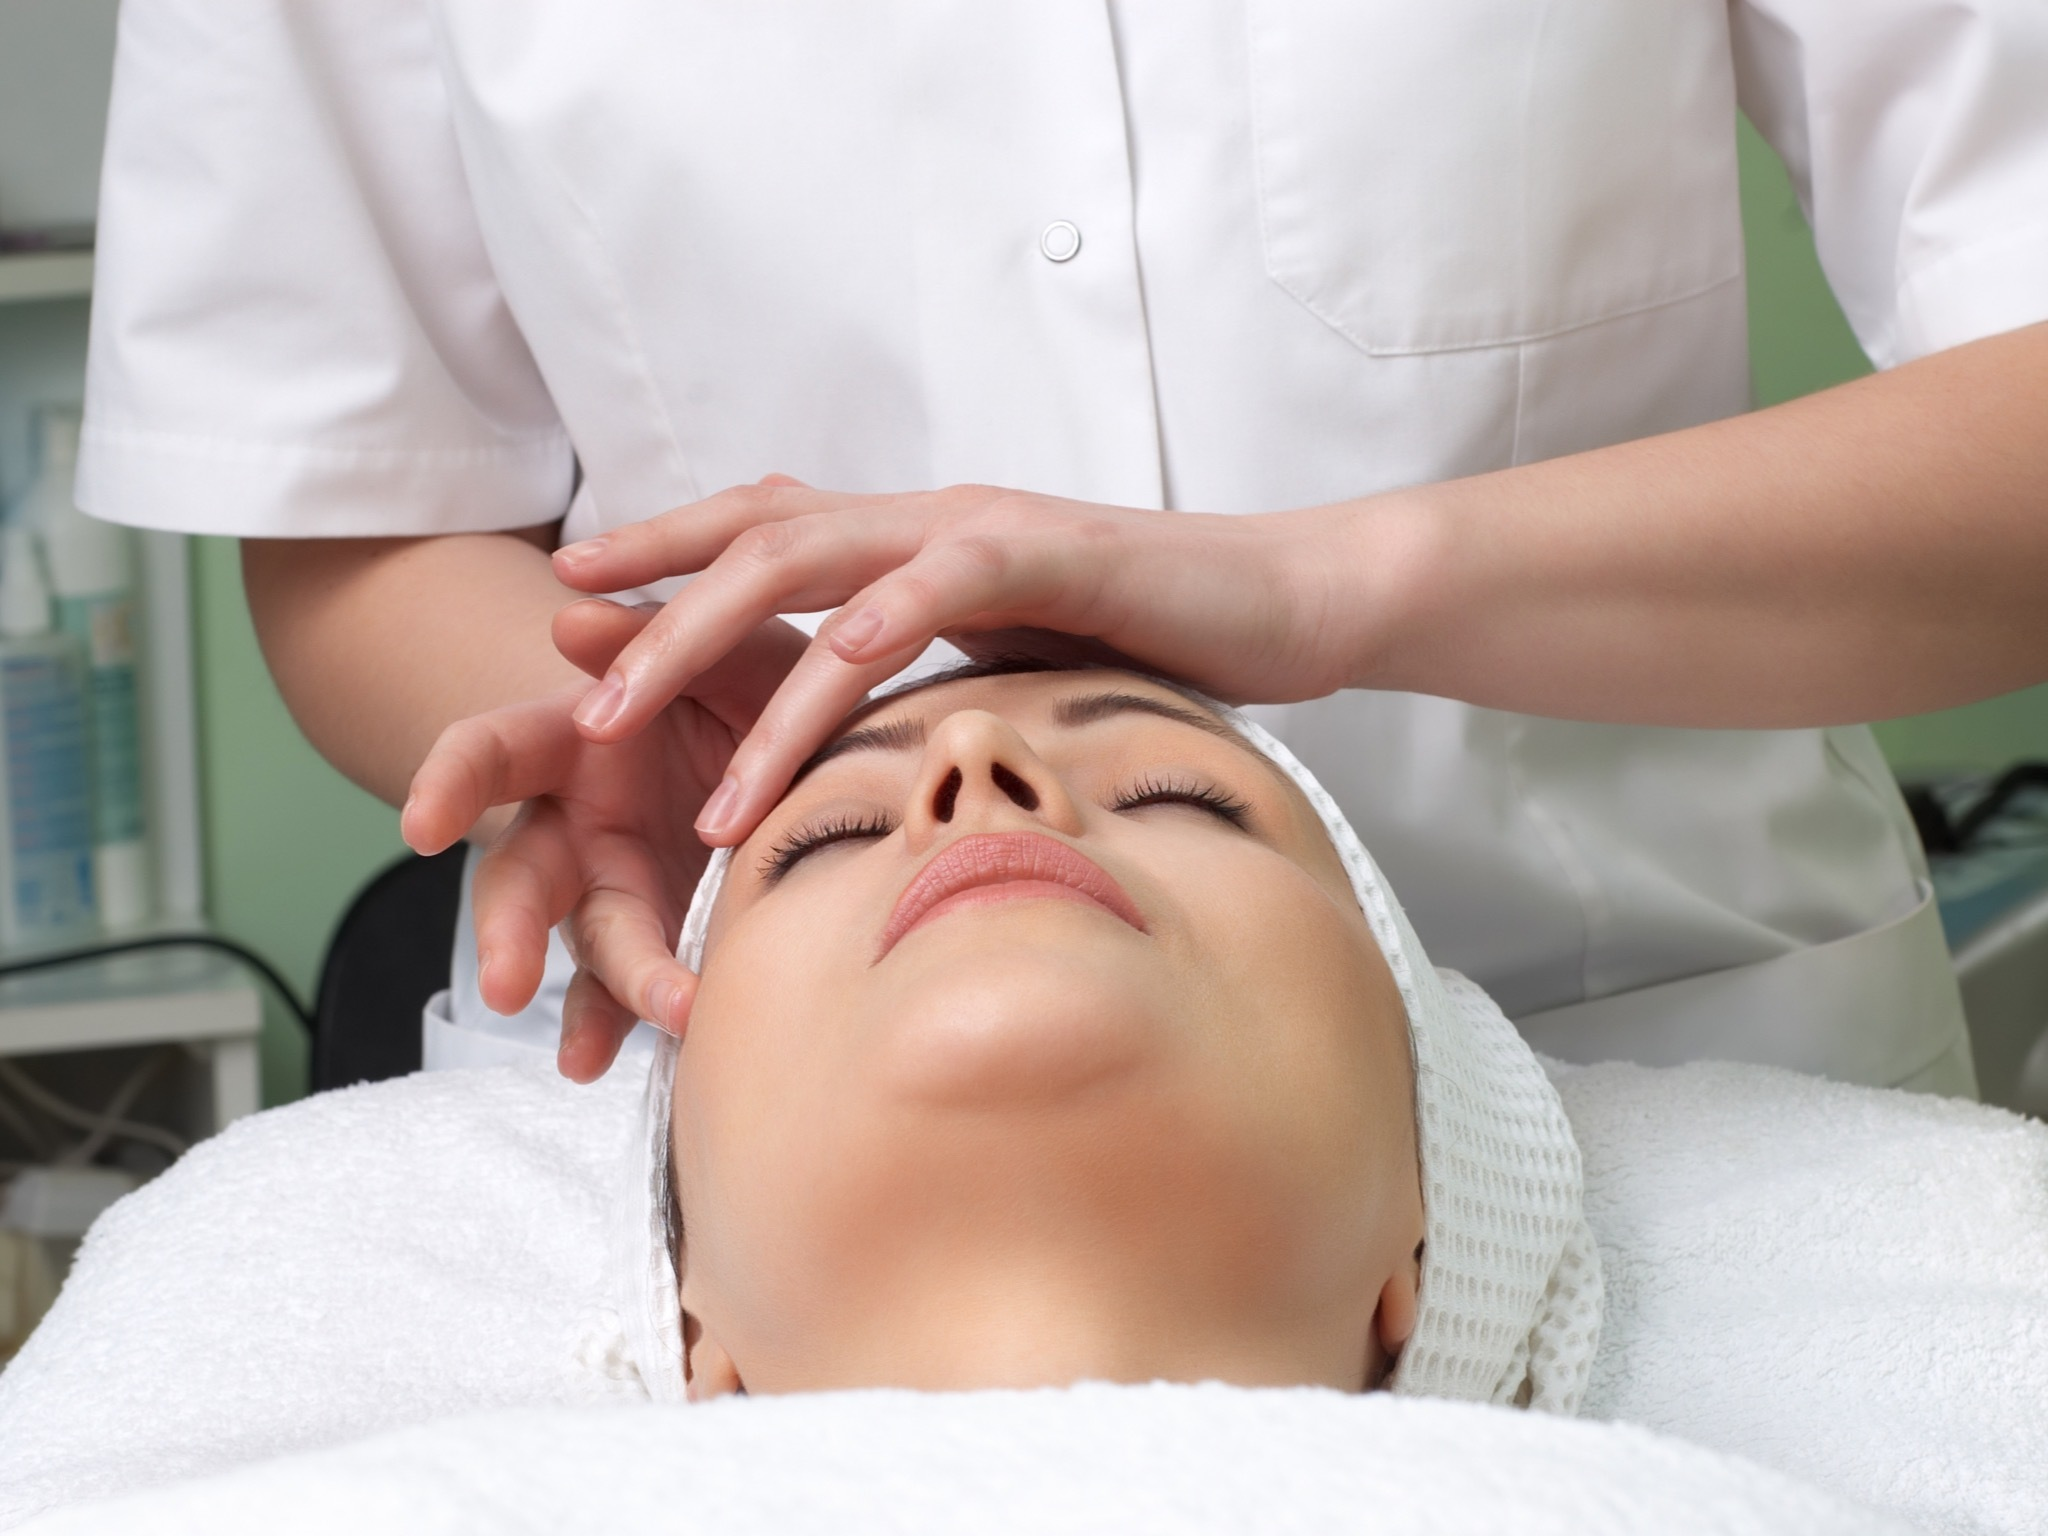 A generic shot of a woman at a spa receiving a head massage